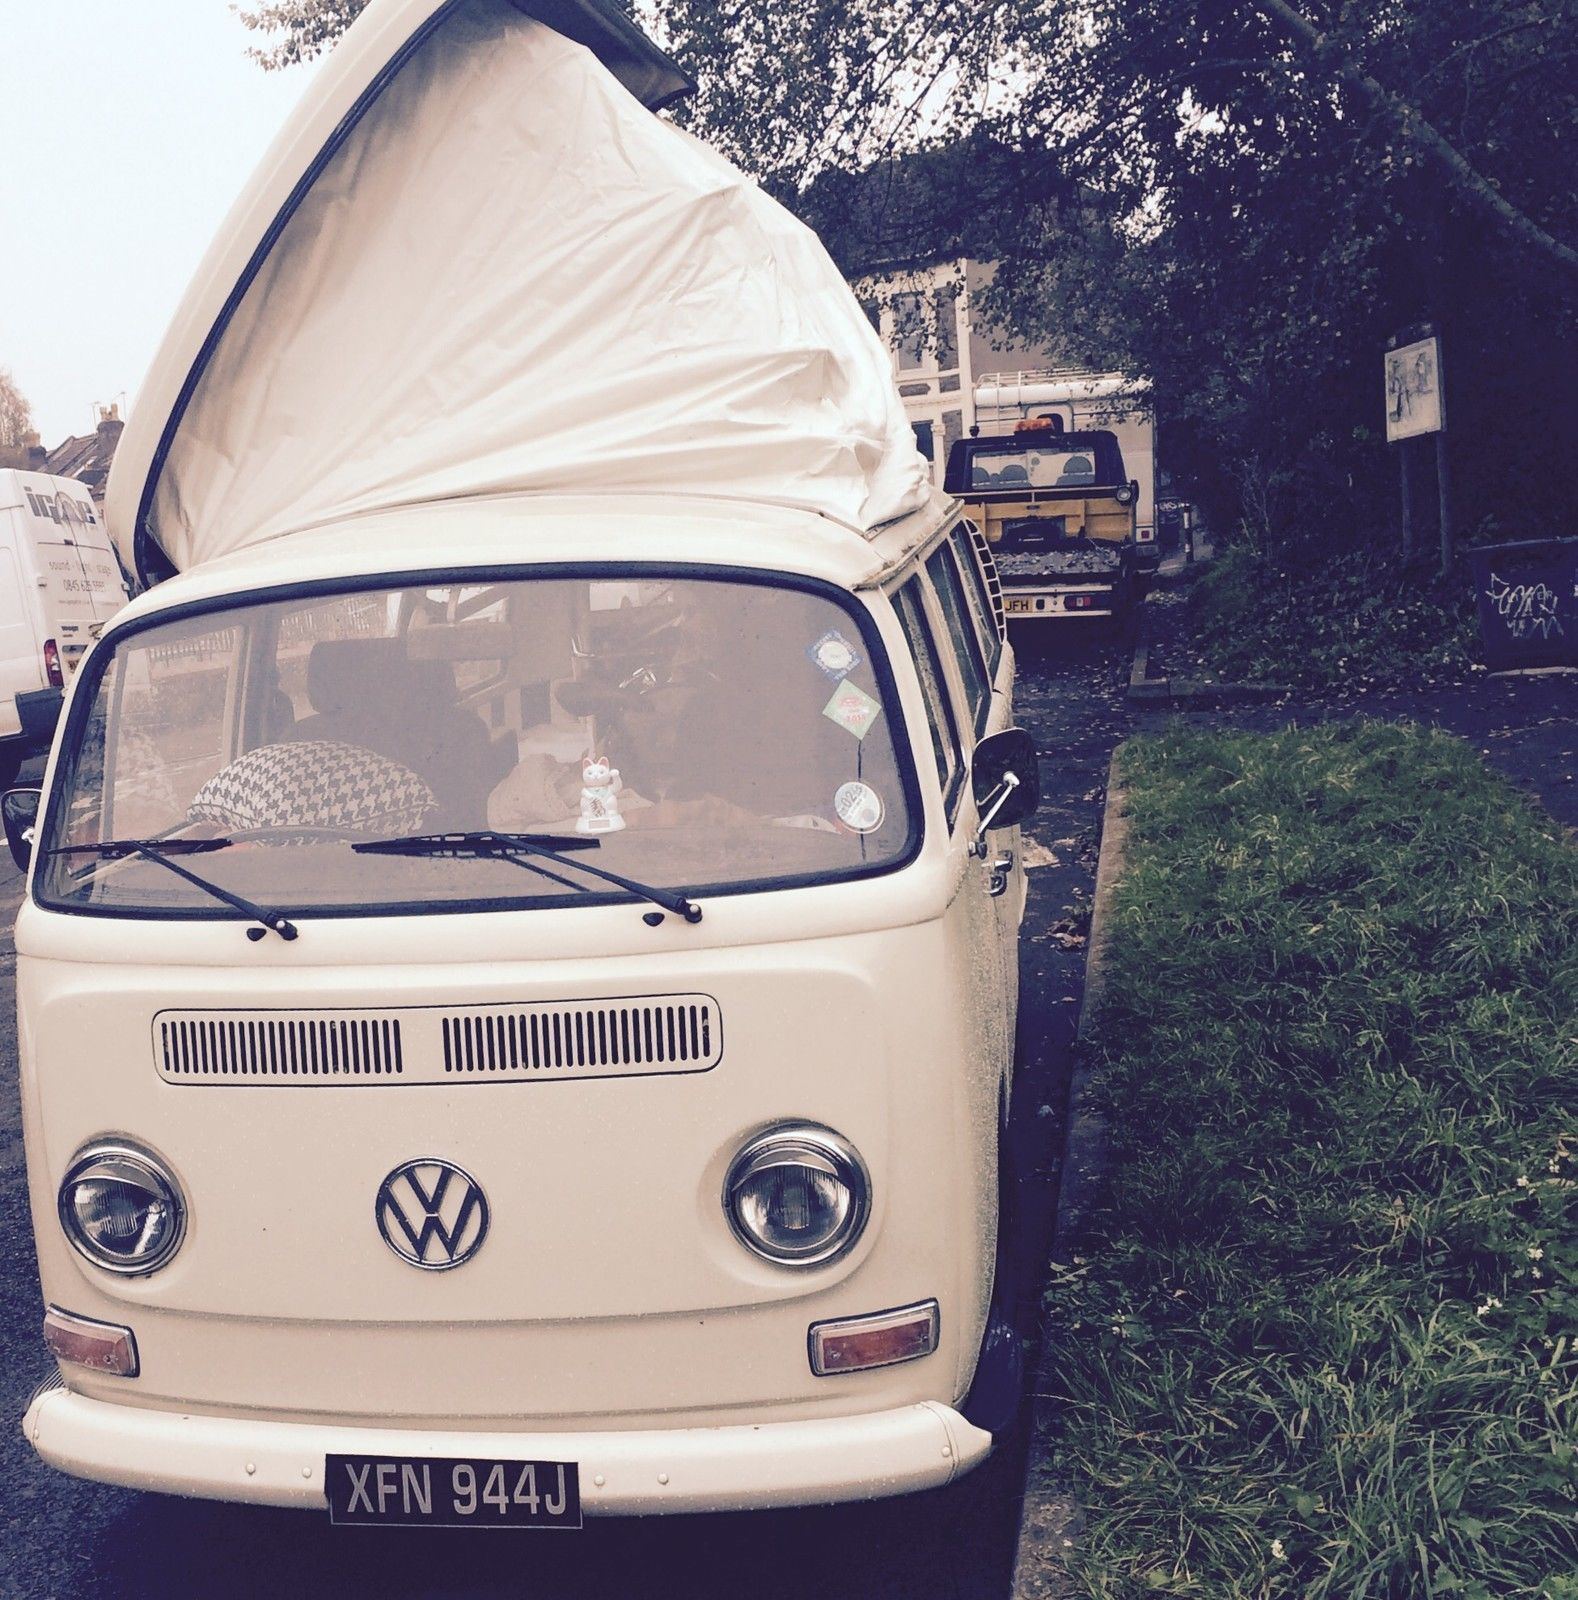 Volkswagen Type 2 Camper Dormobile From 1971 This Is A Great